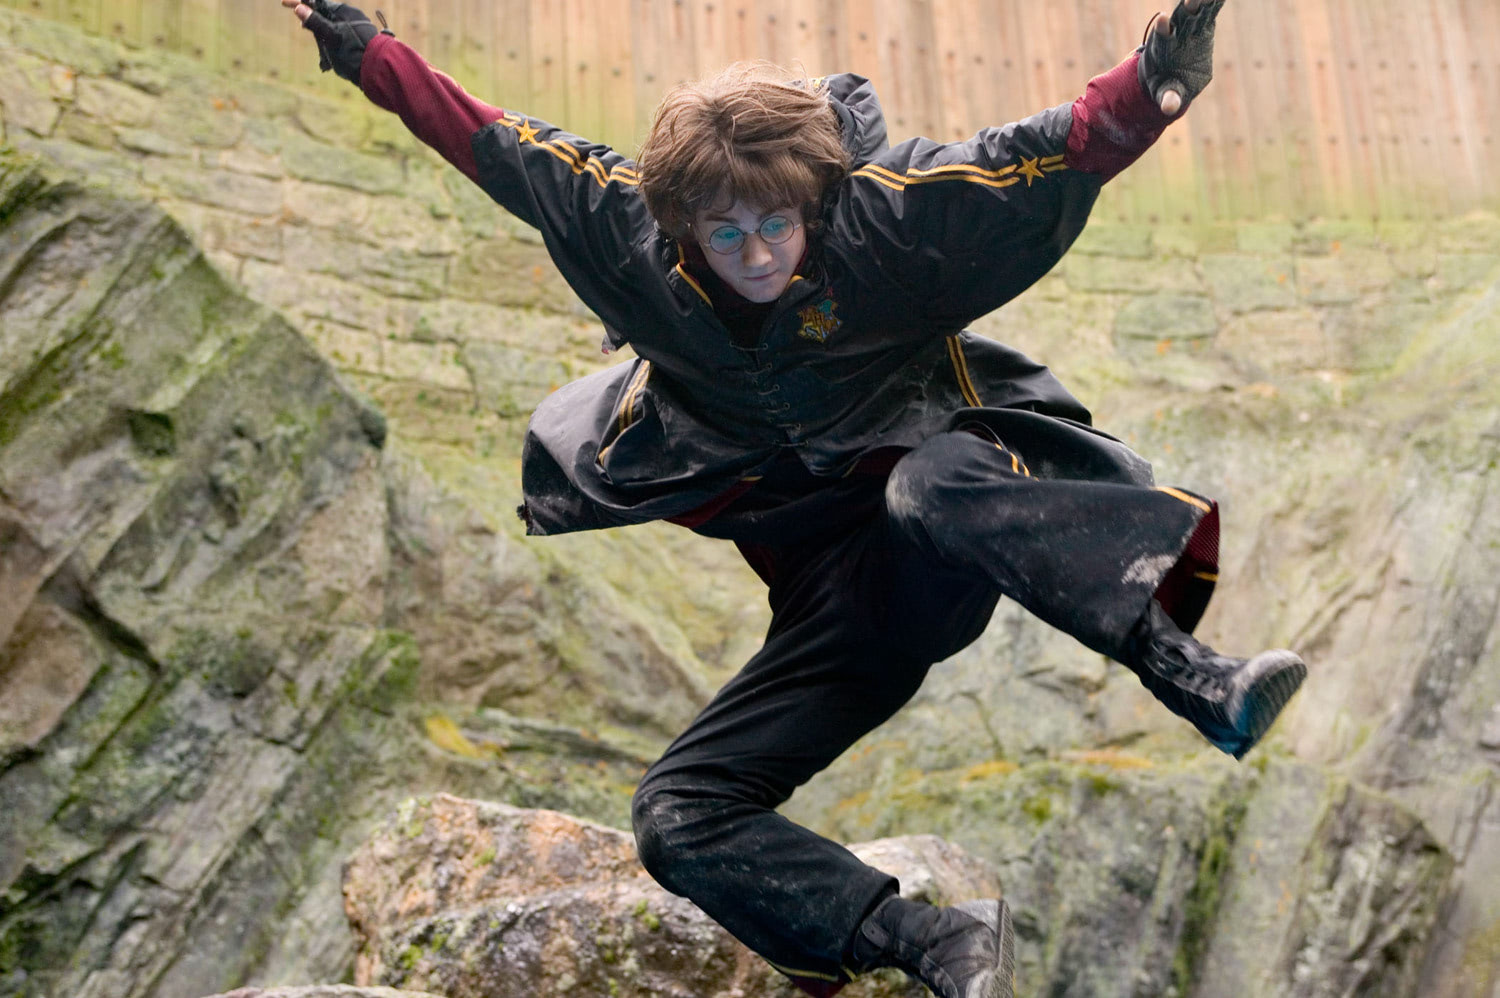 Harry jumps during the First Task